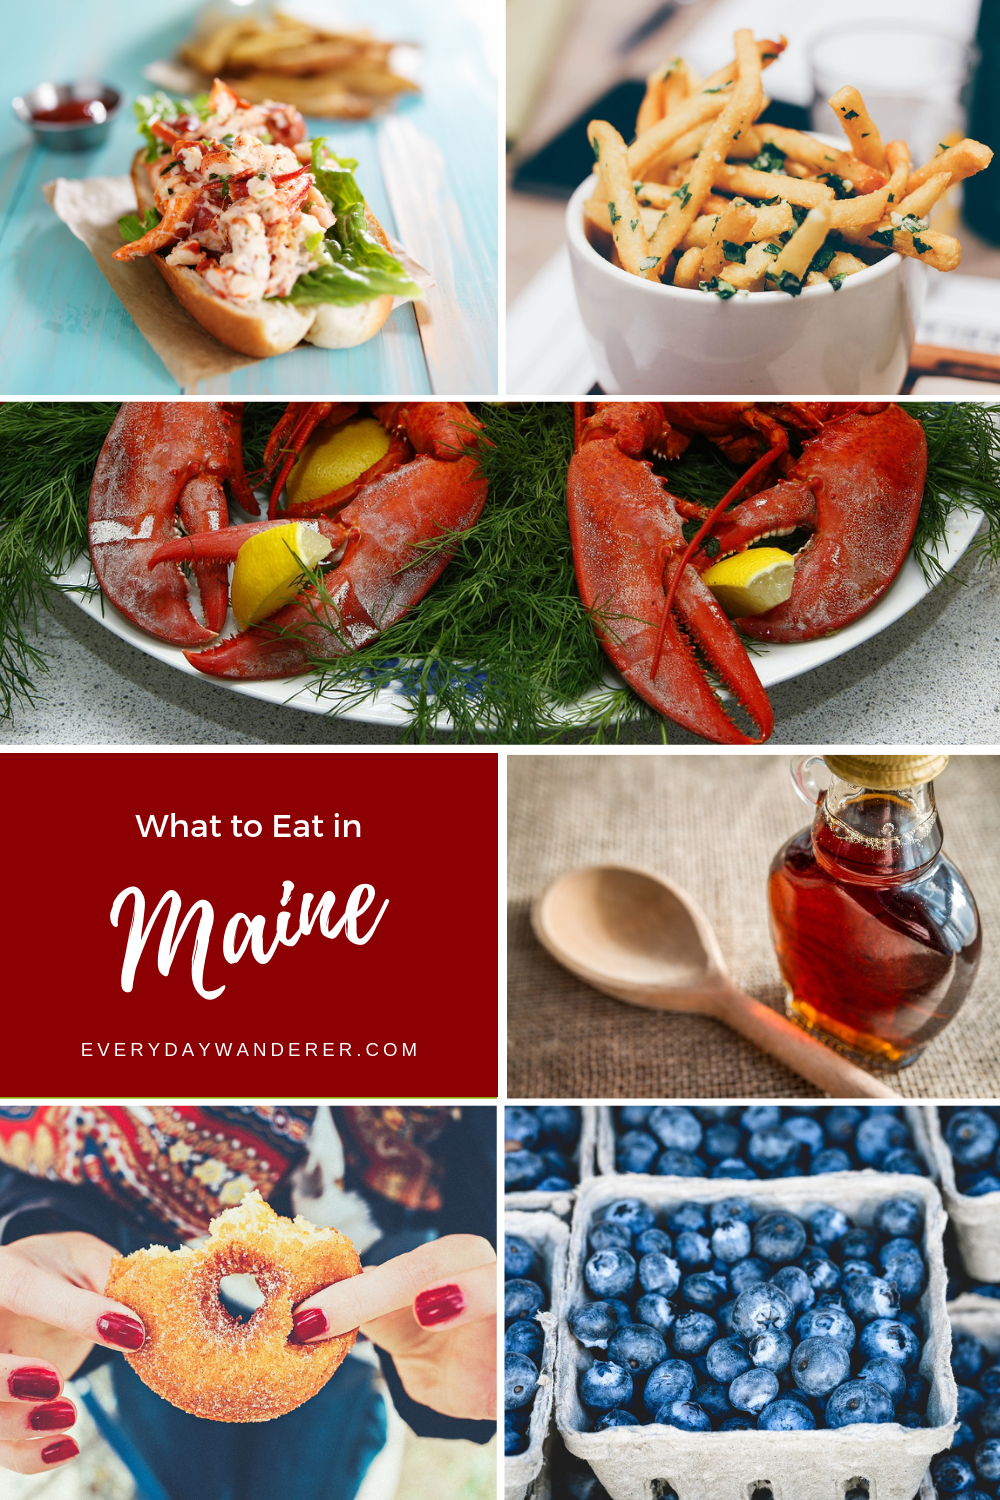 What To Eat In Portland Maine Maine What To Do Lobster Roll Potatoes Maple Syrup Maple Syrup Benefits Bluebe Eat Delicious Destinations Travel Food